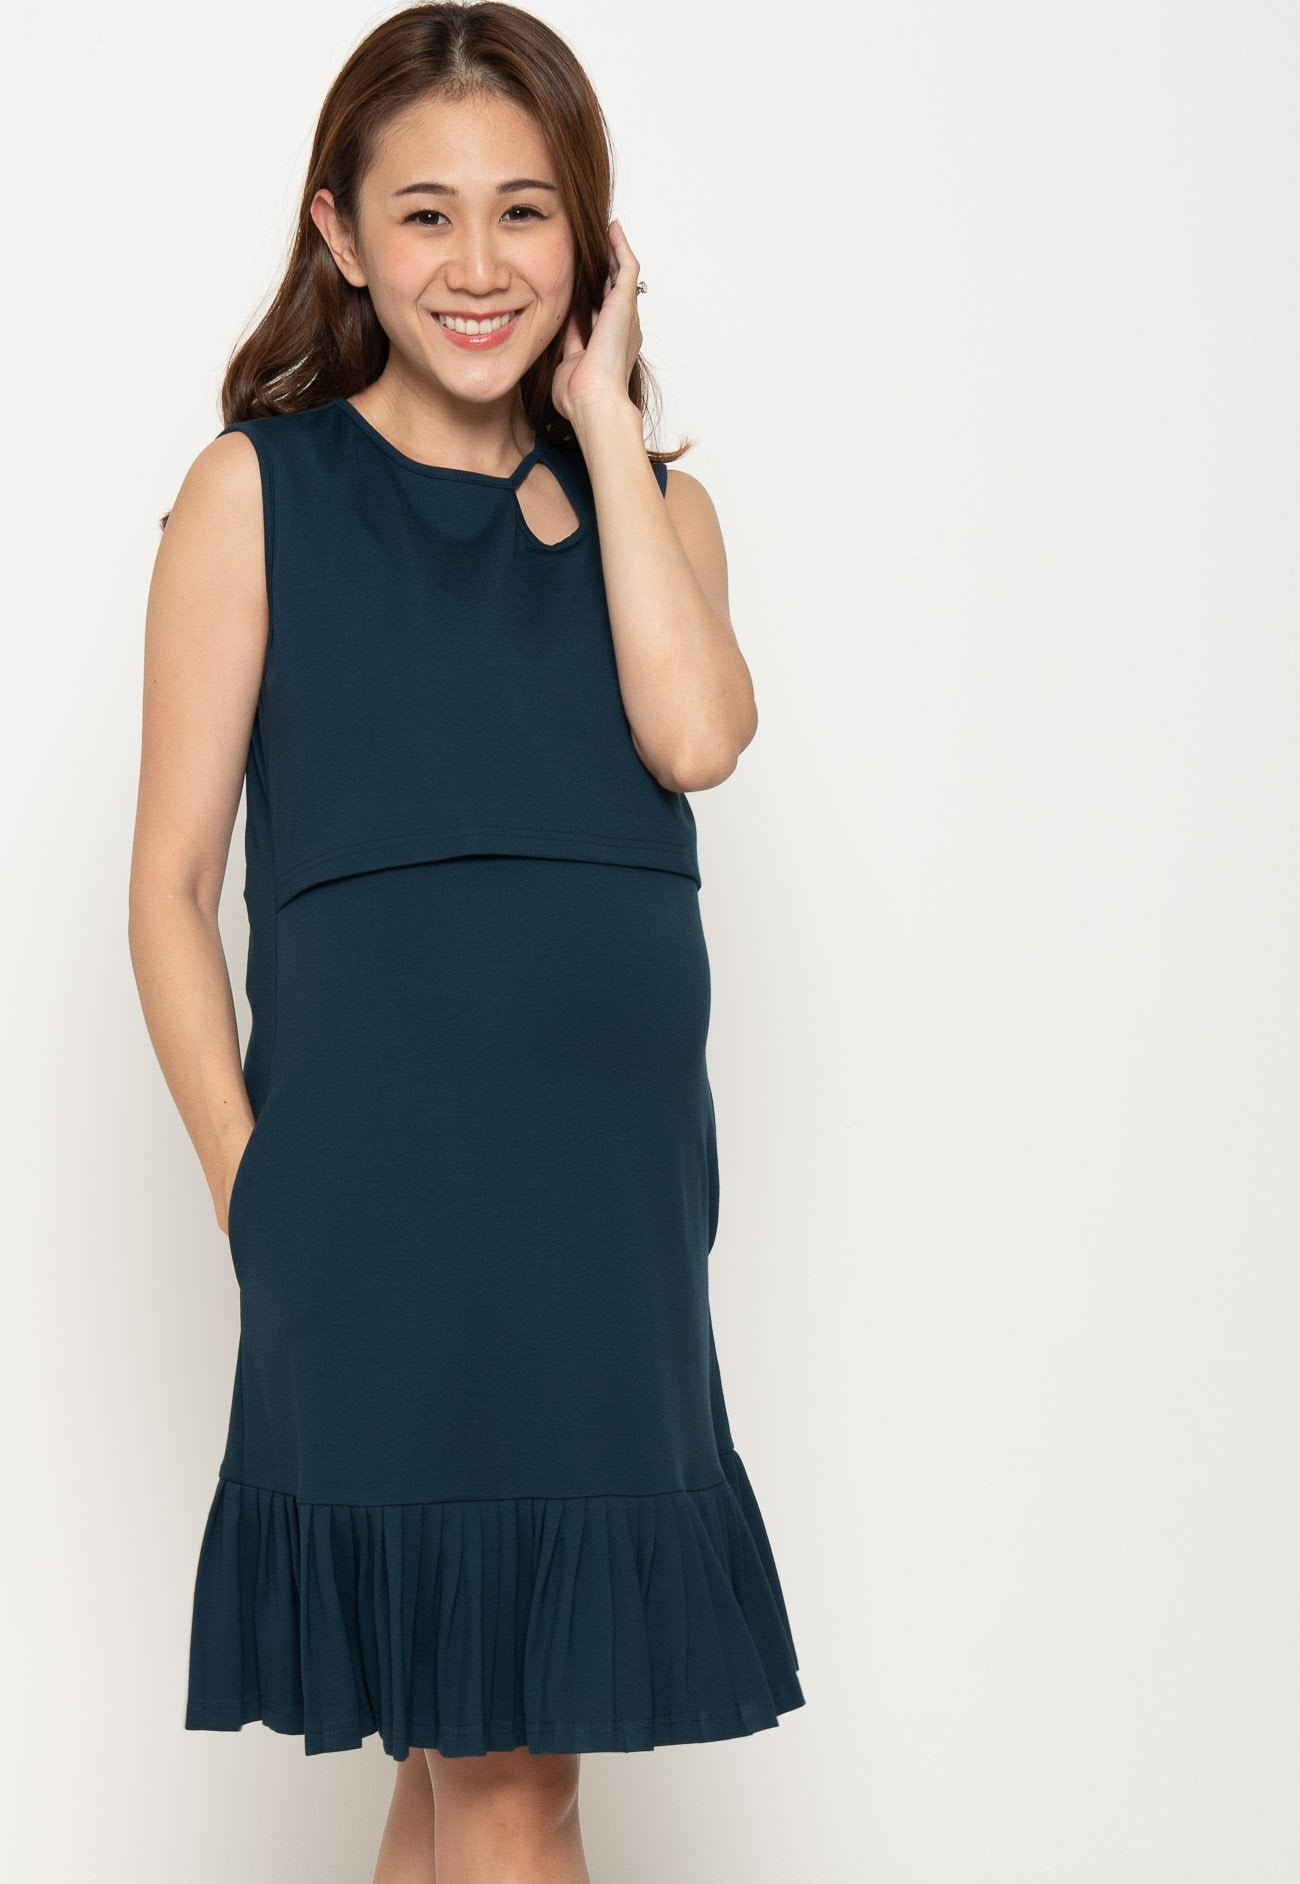 Peni Pleated Nursing Dress in Navy  by Jump Eat Cry - Maternity and nursing wear